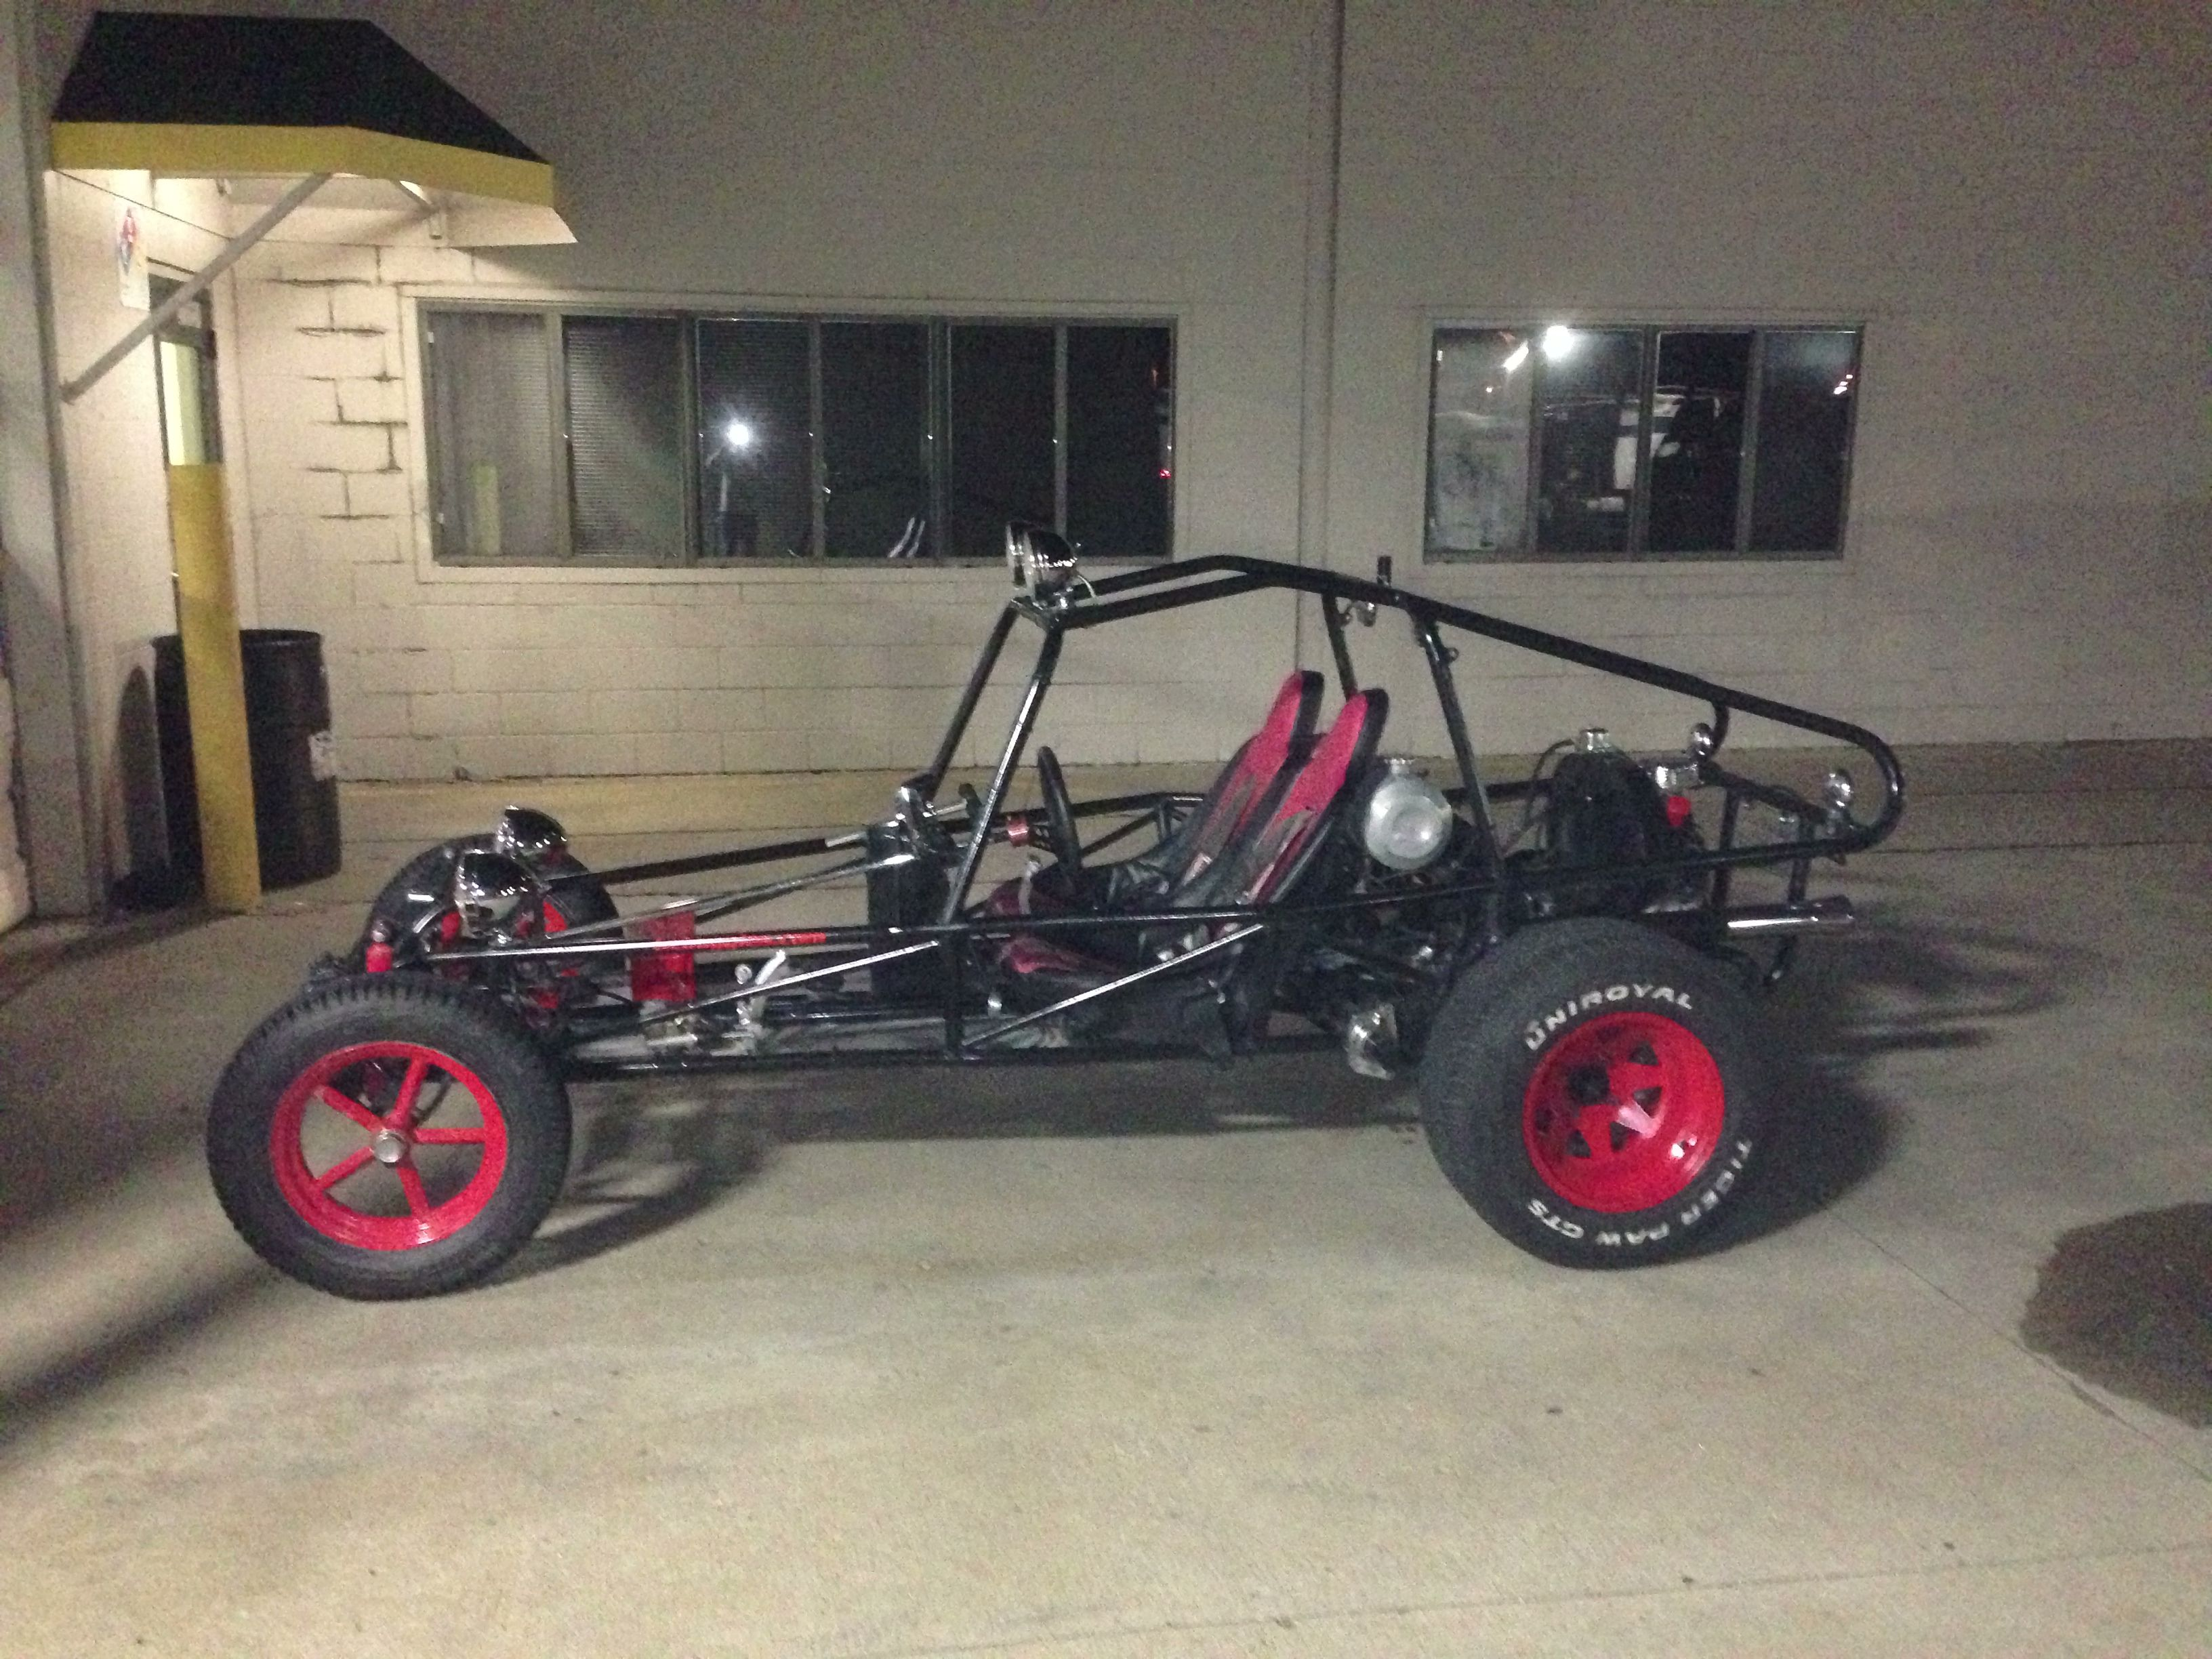 Kart Cross Buggy Build Vw 1600 Dual Port Dune Buggy Sand Rail 2 Year Build